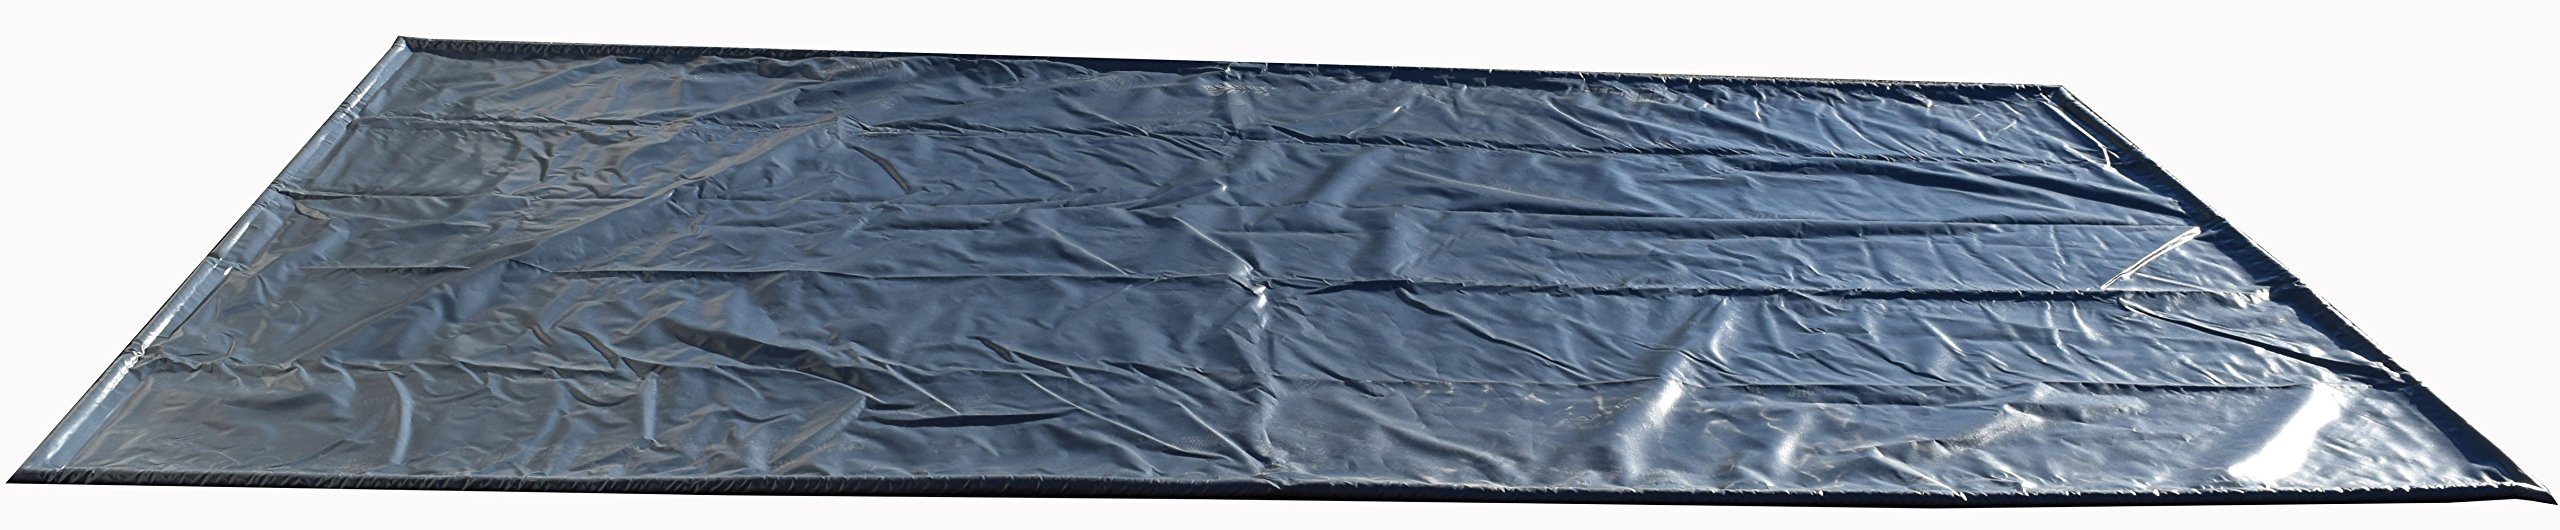 TruContain CM922 Containment Mat for Snow, Mud and Rain, 108'' W x 264'' H, Gray by TruContain (Image #1)